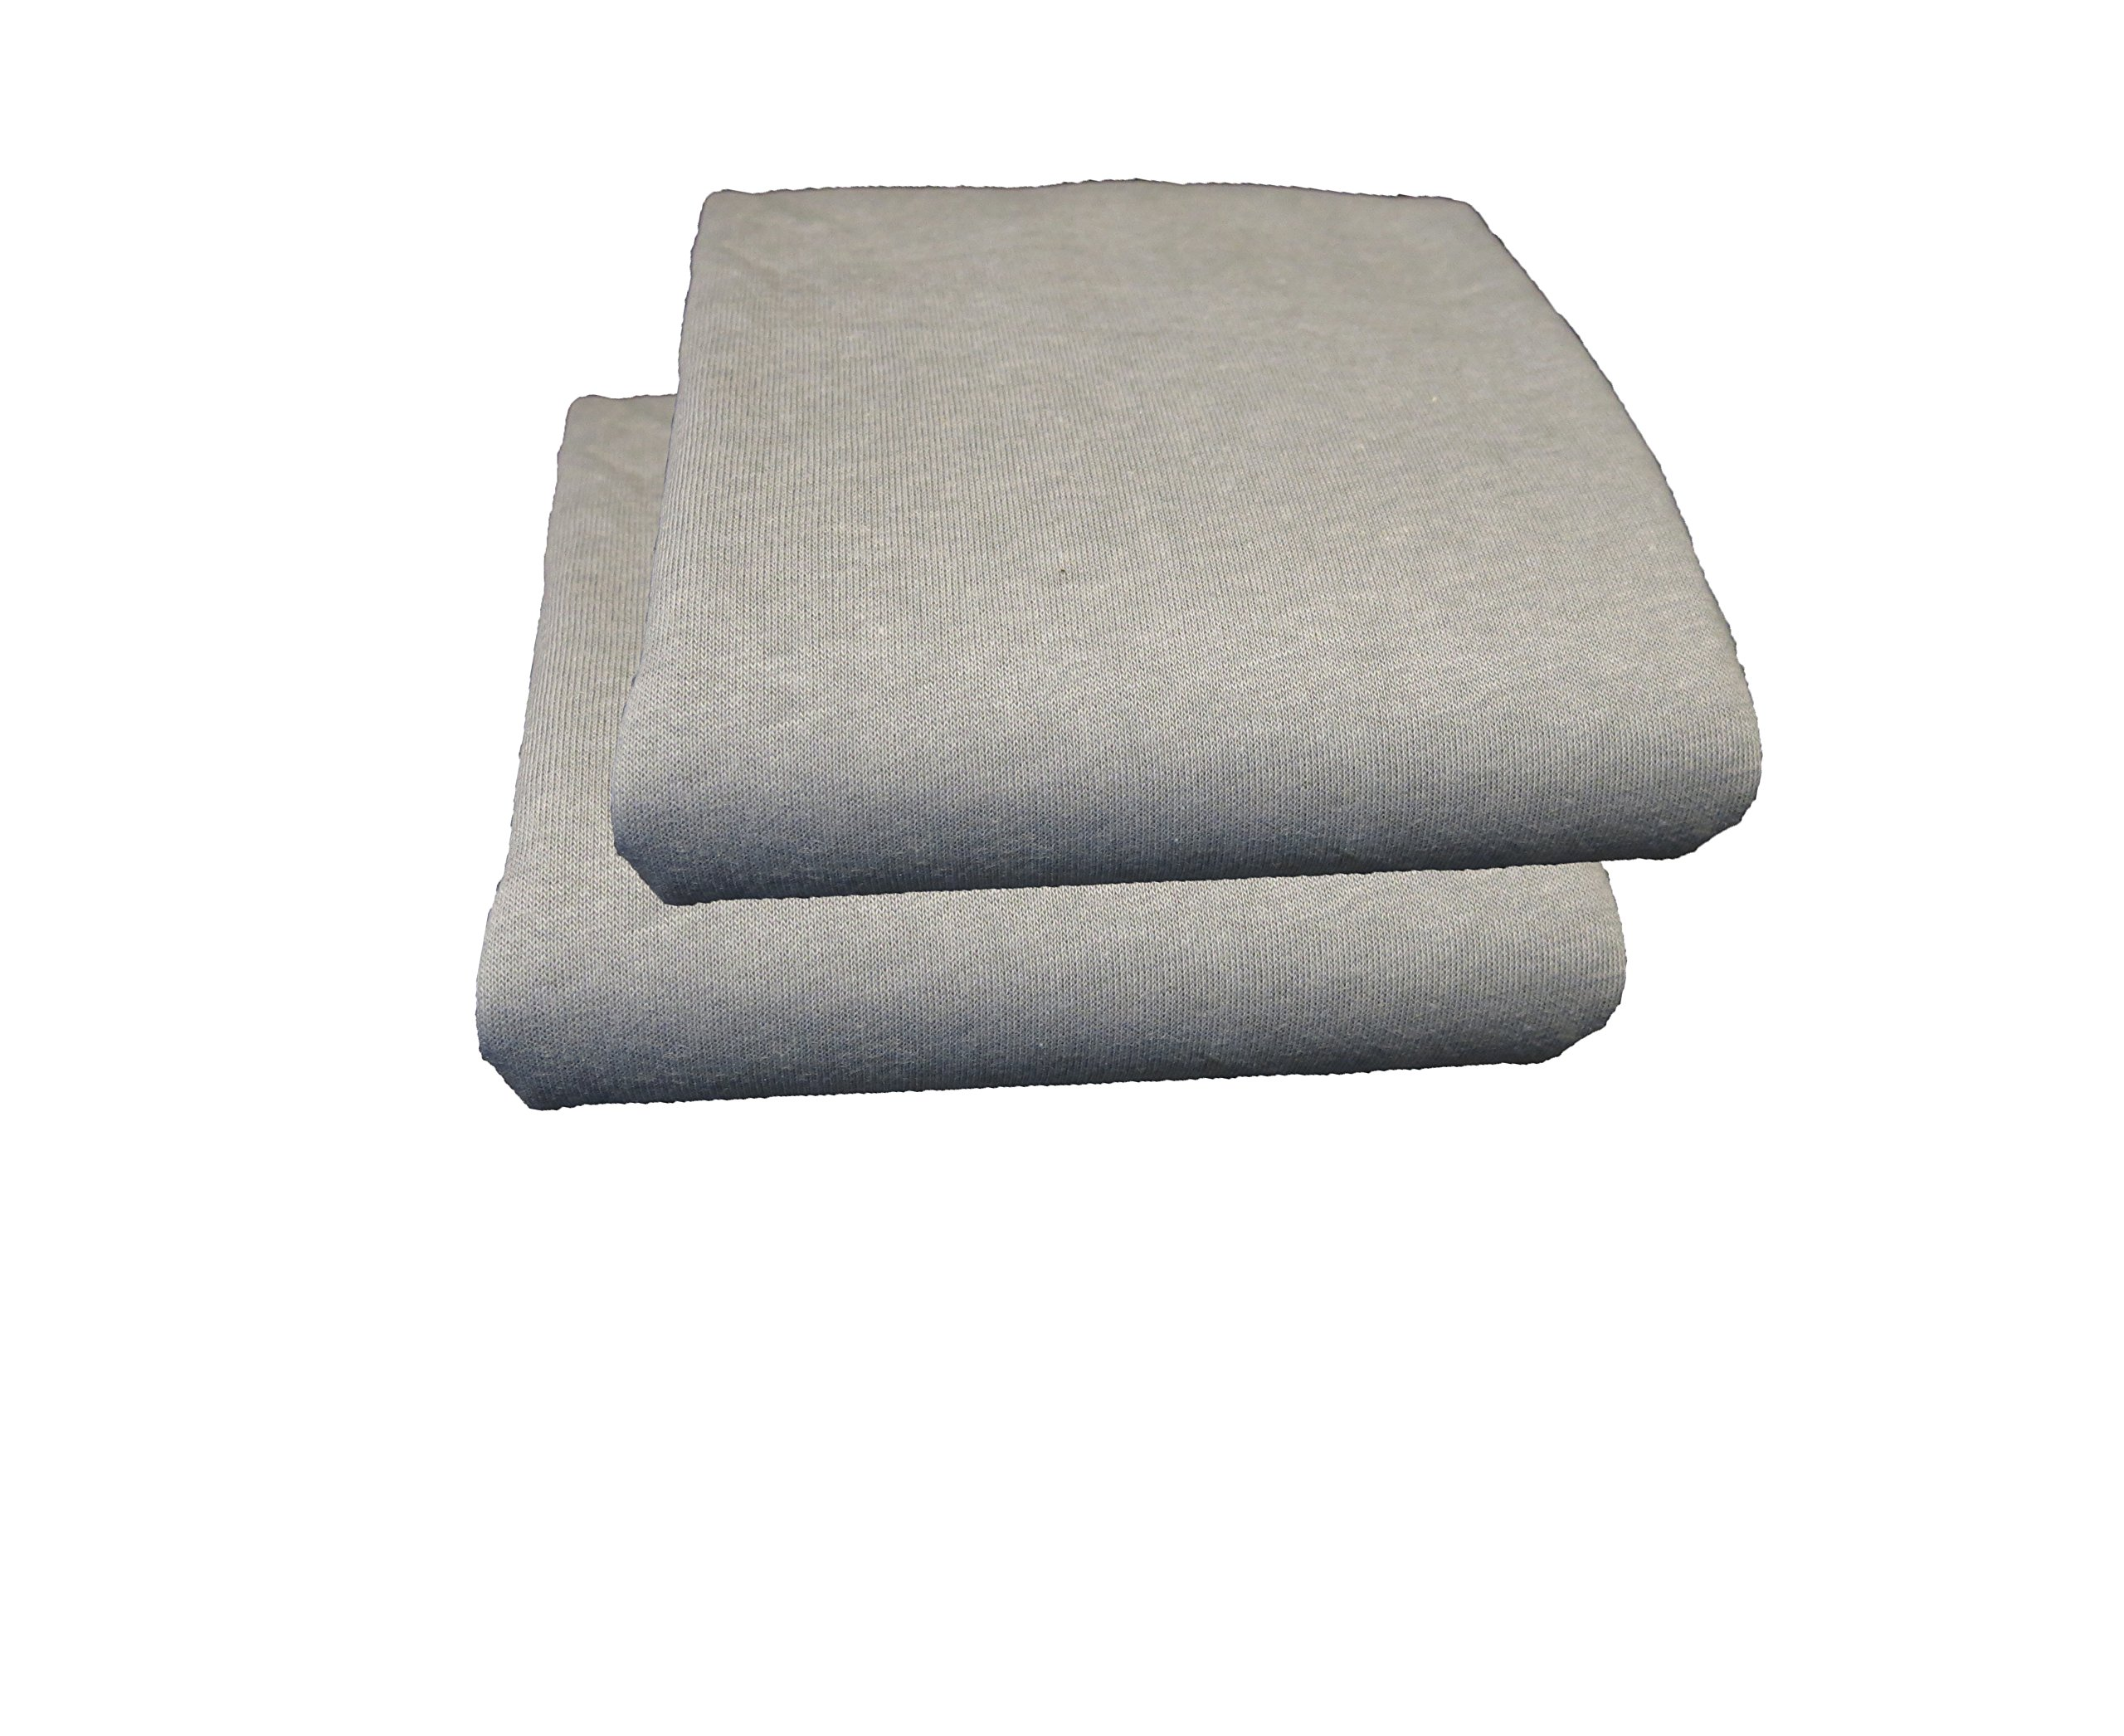 Fitted Mattress Bassinet Sheet Jersey Knit 30 x 16 - 2 Pack (Grey)